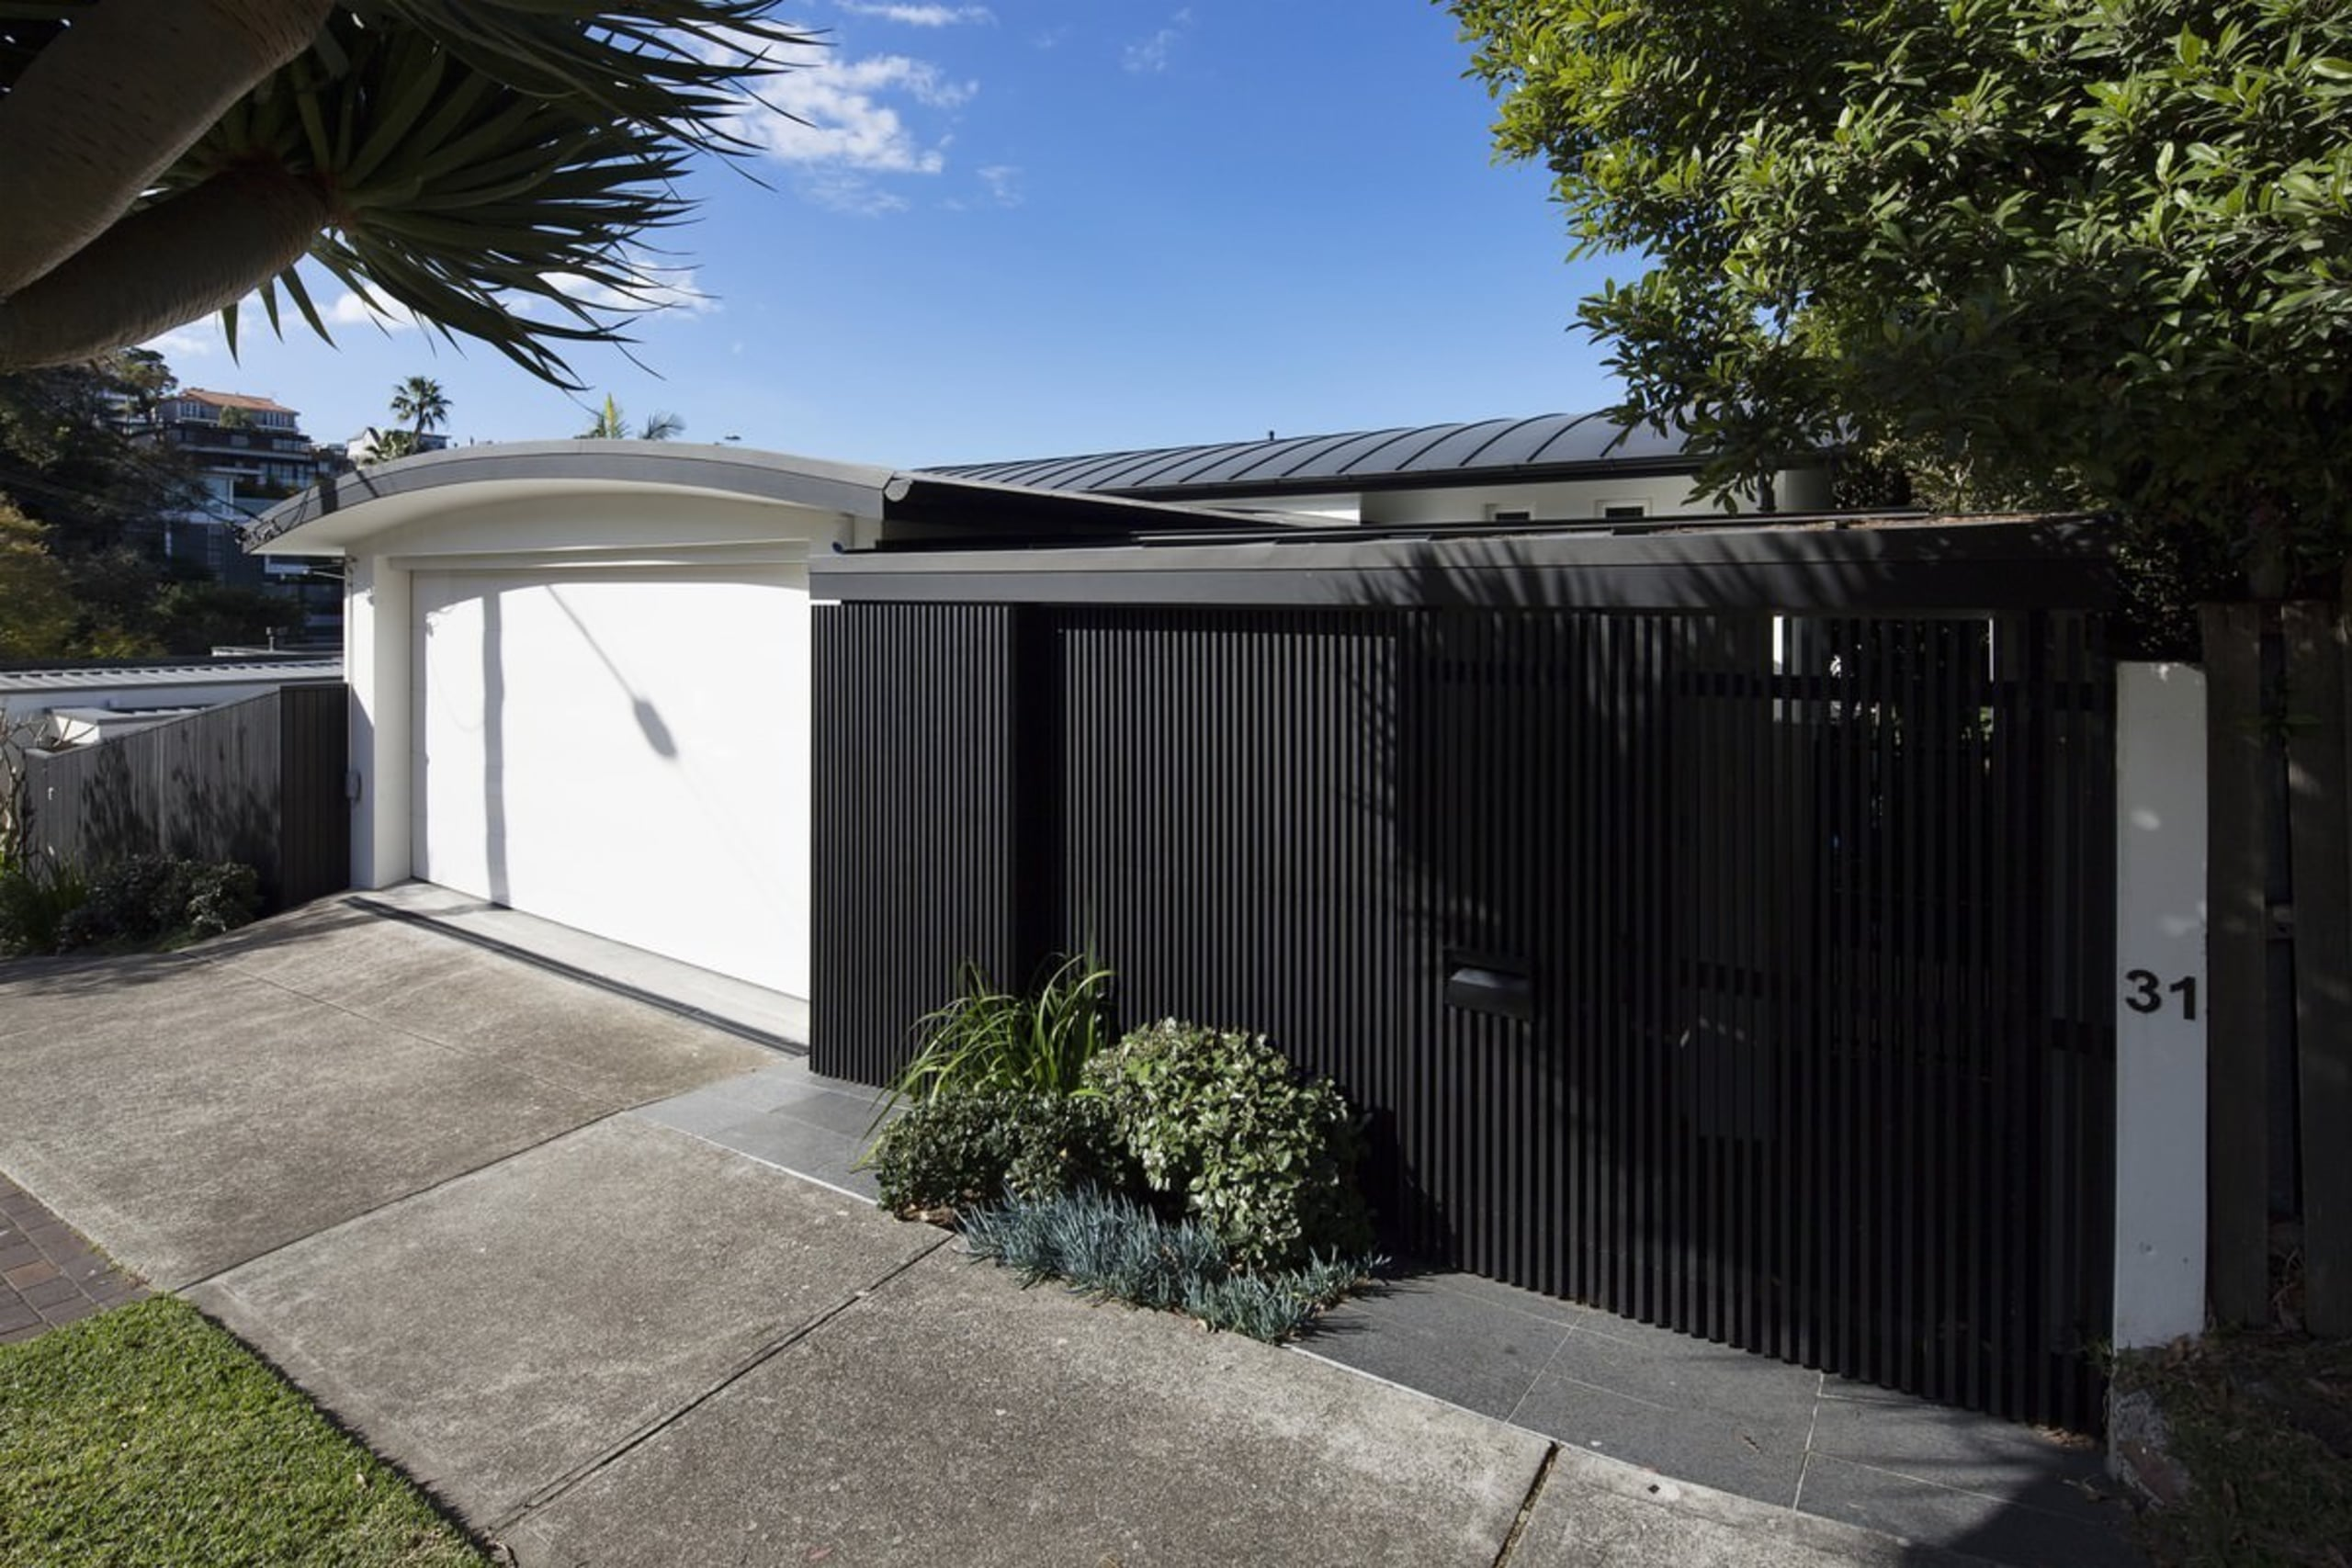 A closer view of the street-facing facade - architecture, facade, fence, home, house, outdoor structure, property, real estate, shed, black